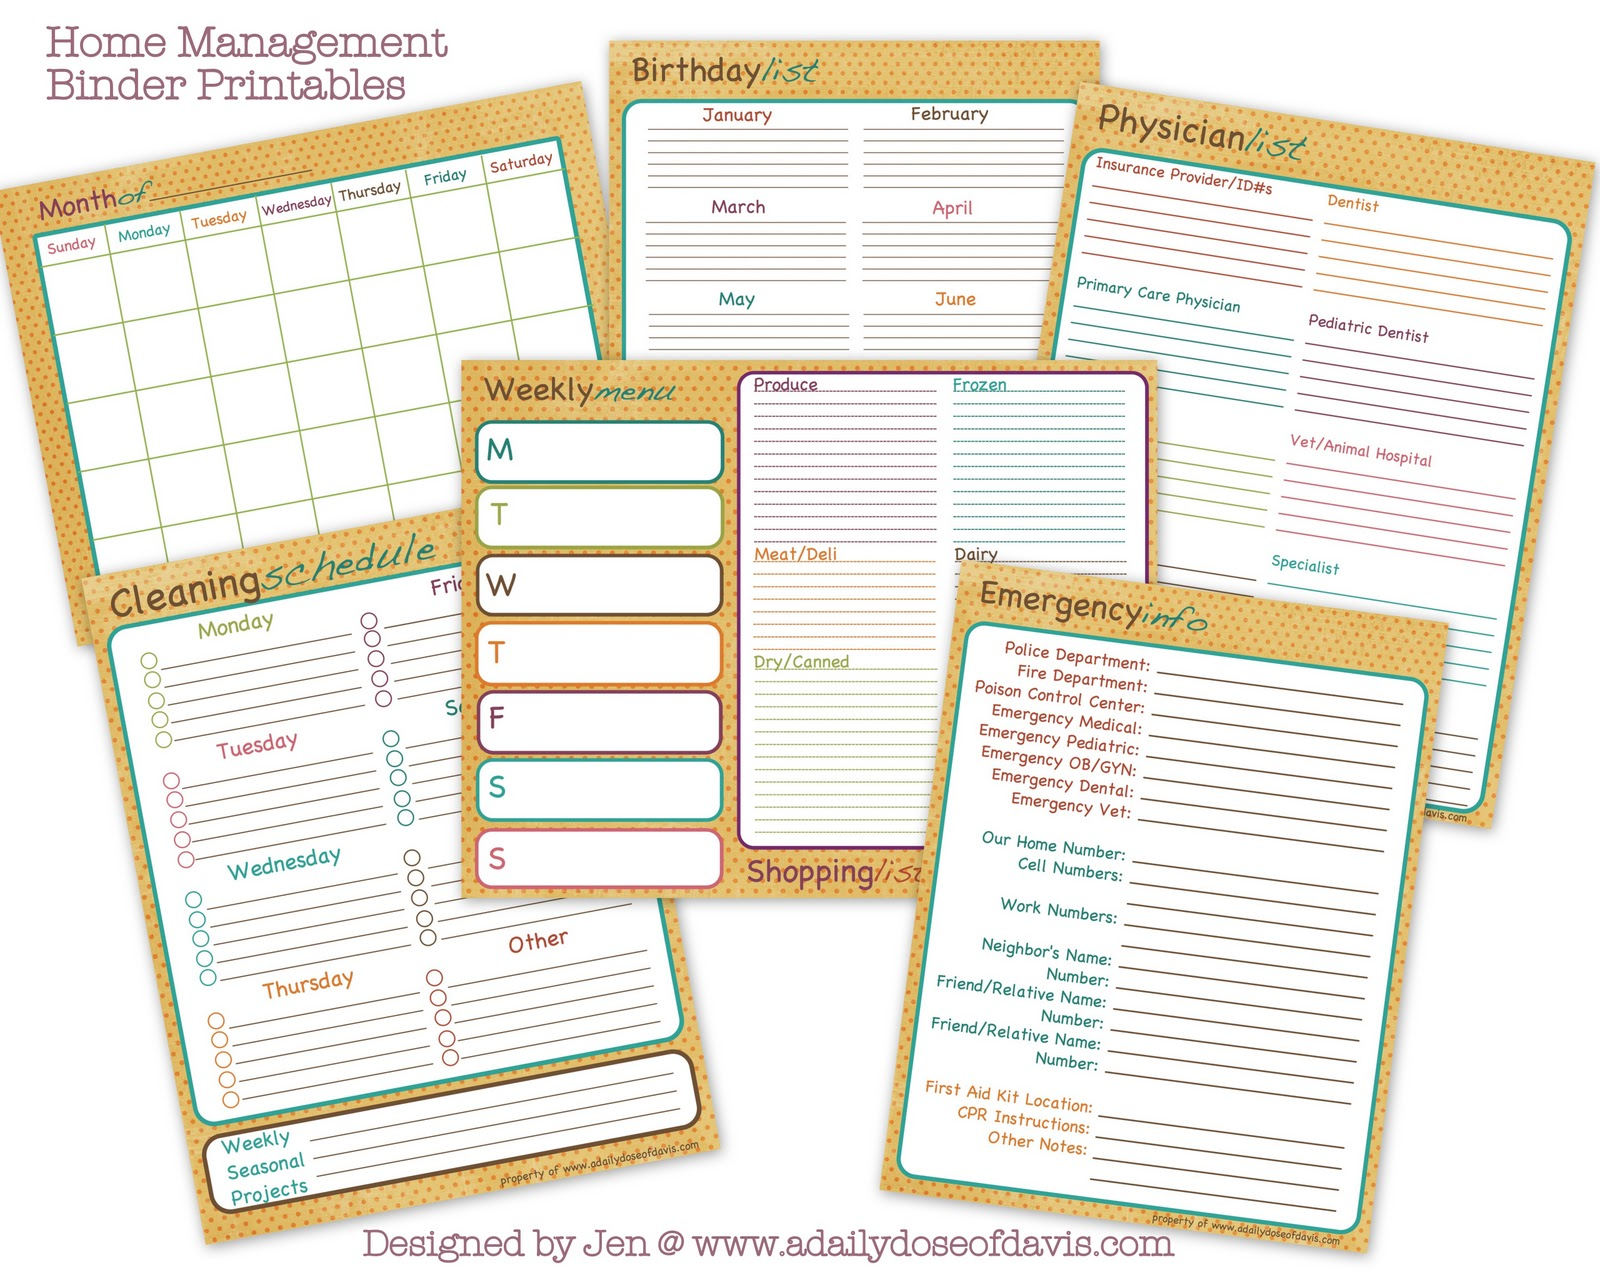 Home Management Binder Free Printables Organizing